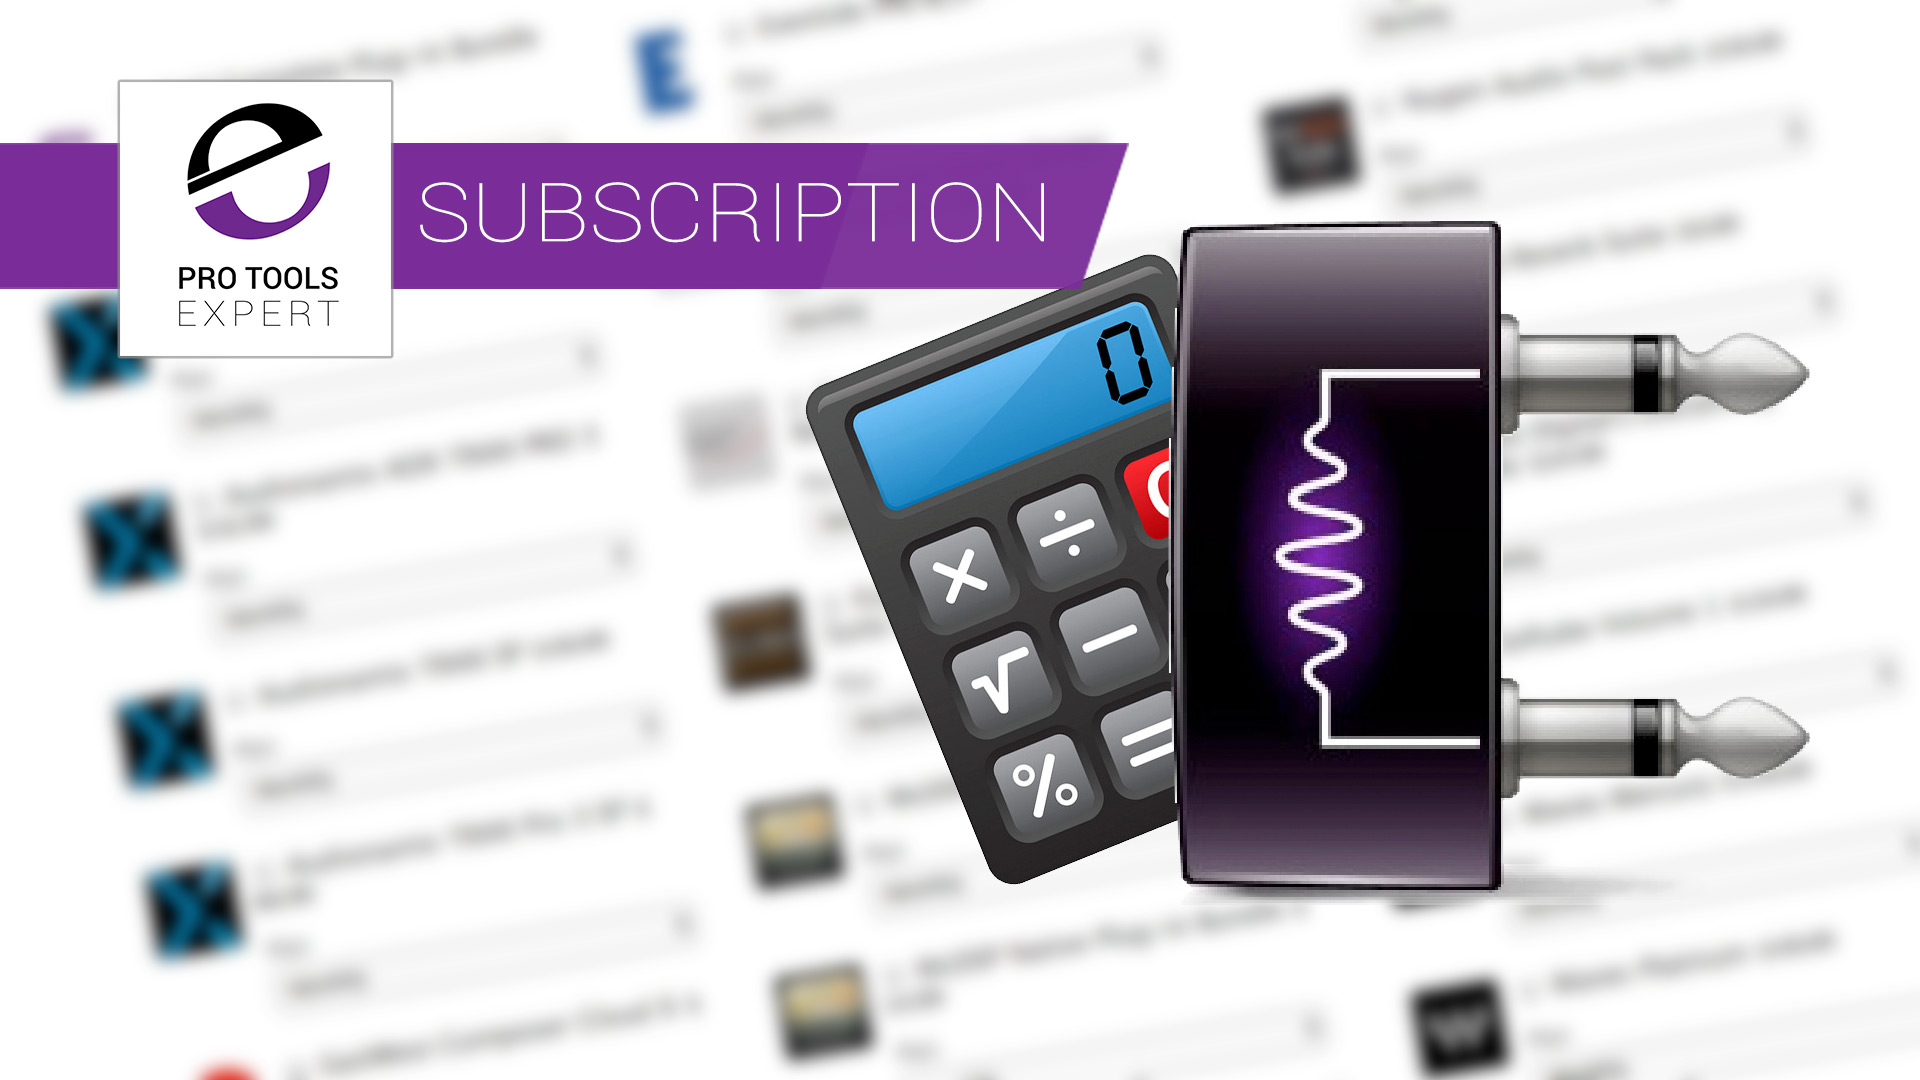 Plug-in-Subscription-Calculator.jpg